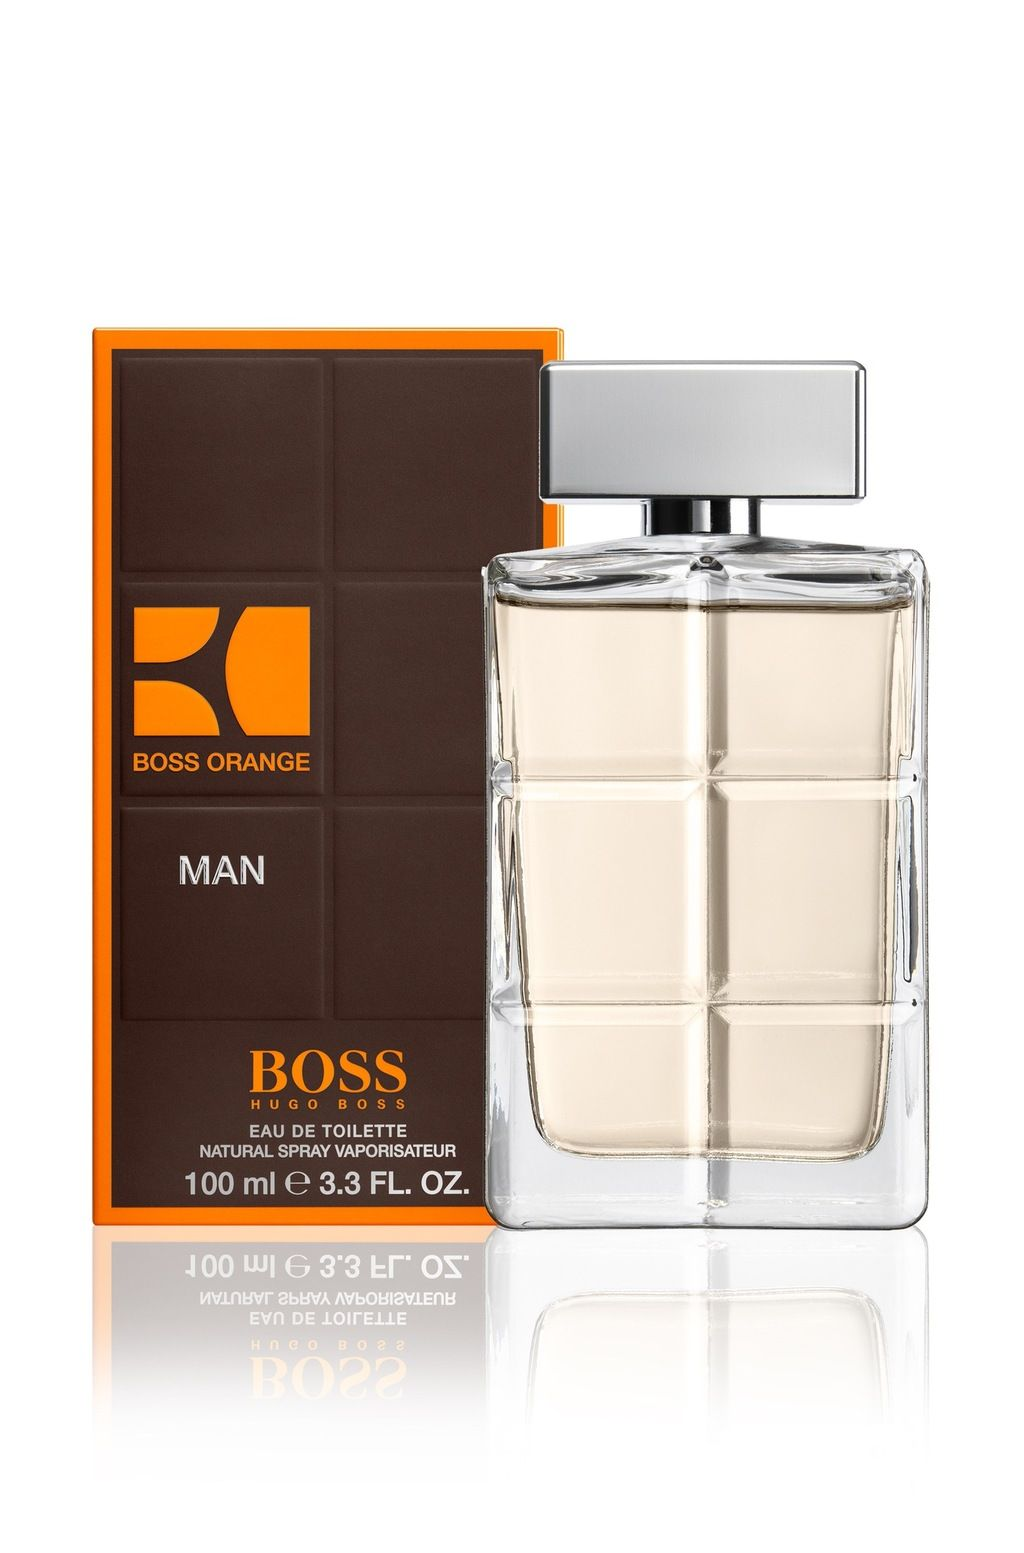 Hugo Boss  uBOSS Orange Manu  Eau de Toilette  fl oz  Men